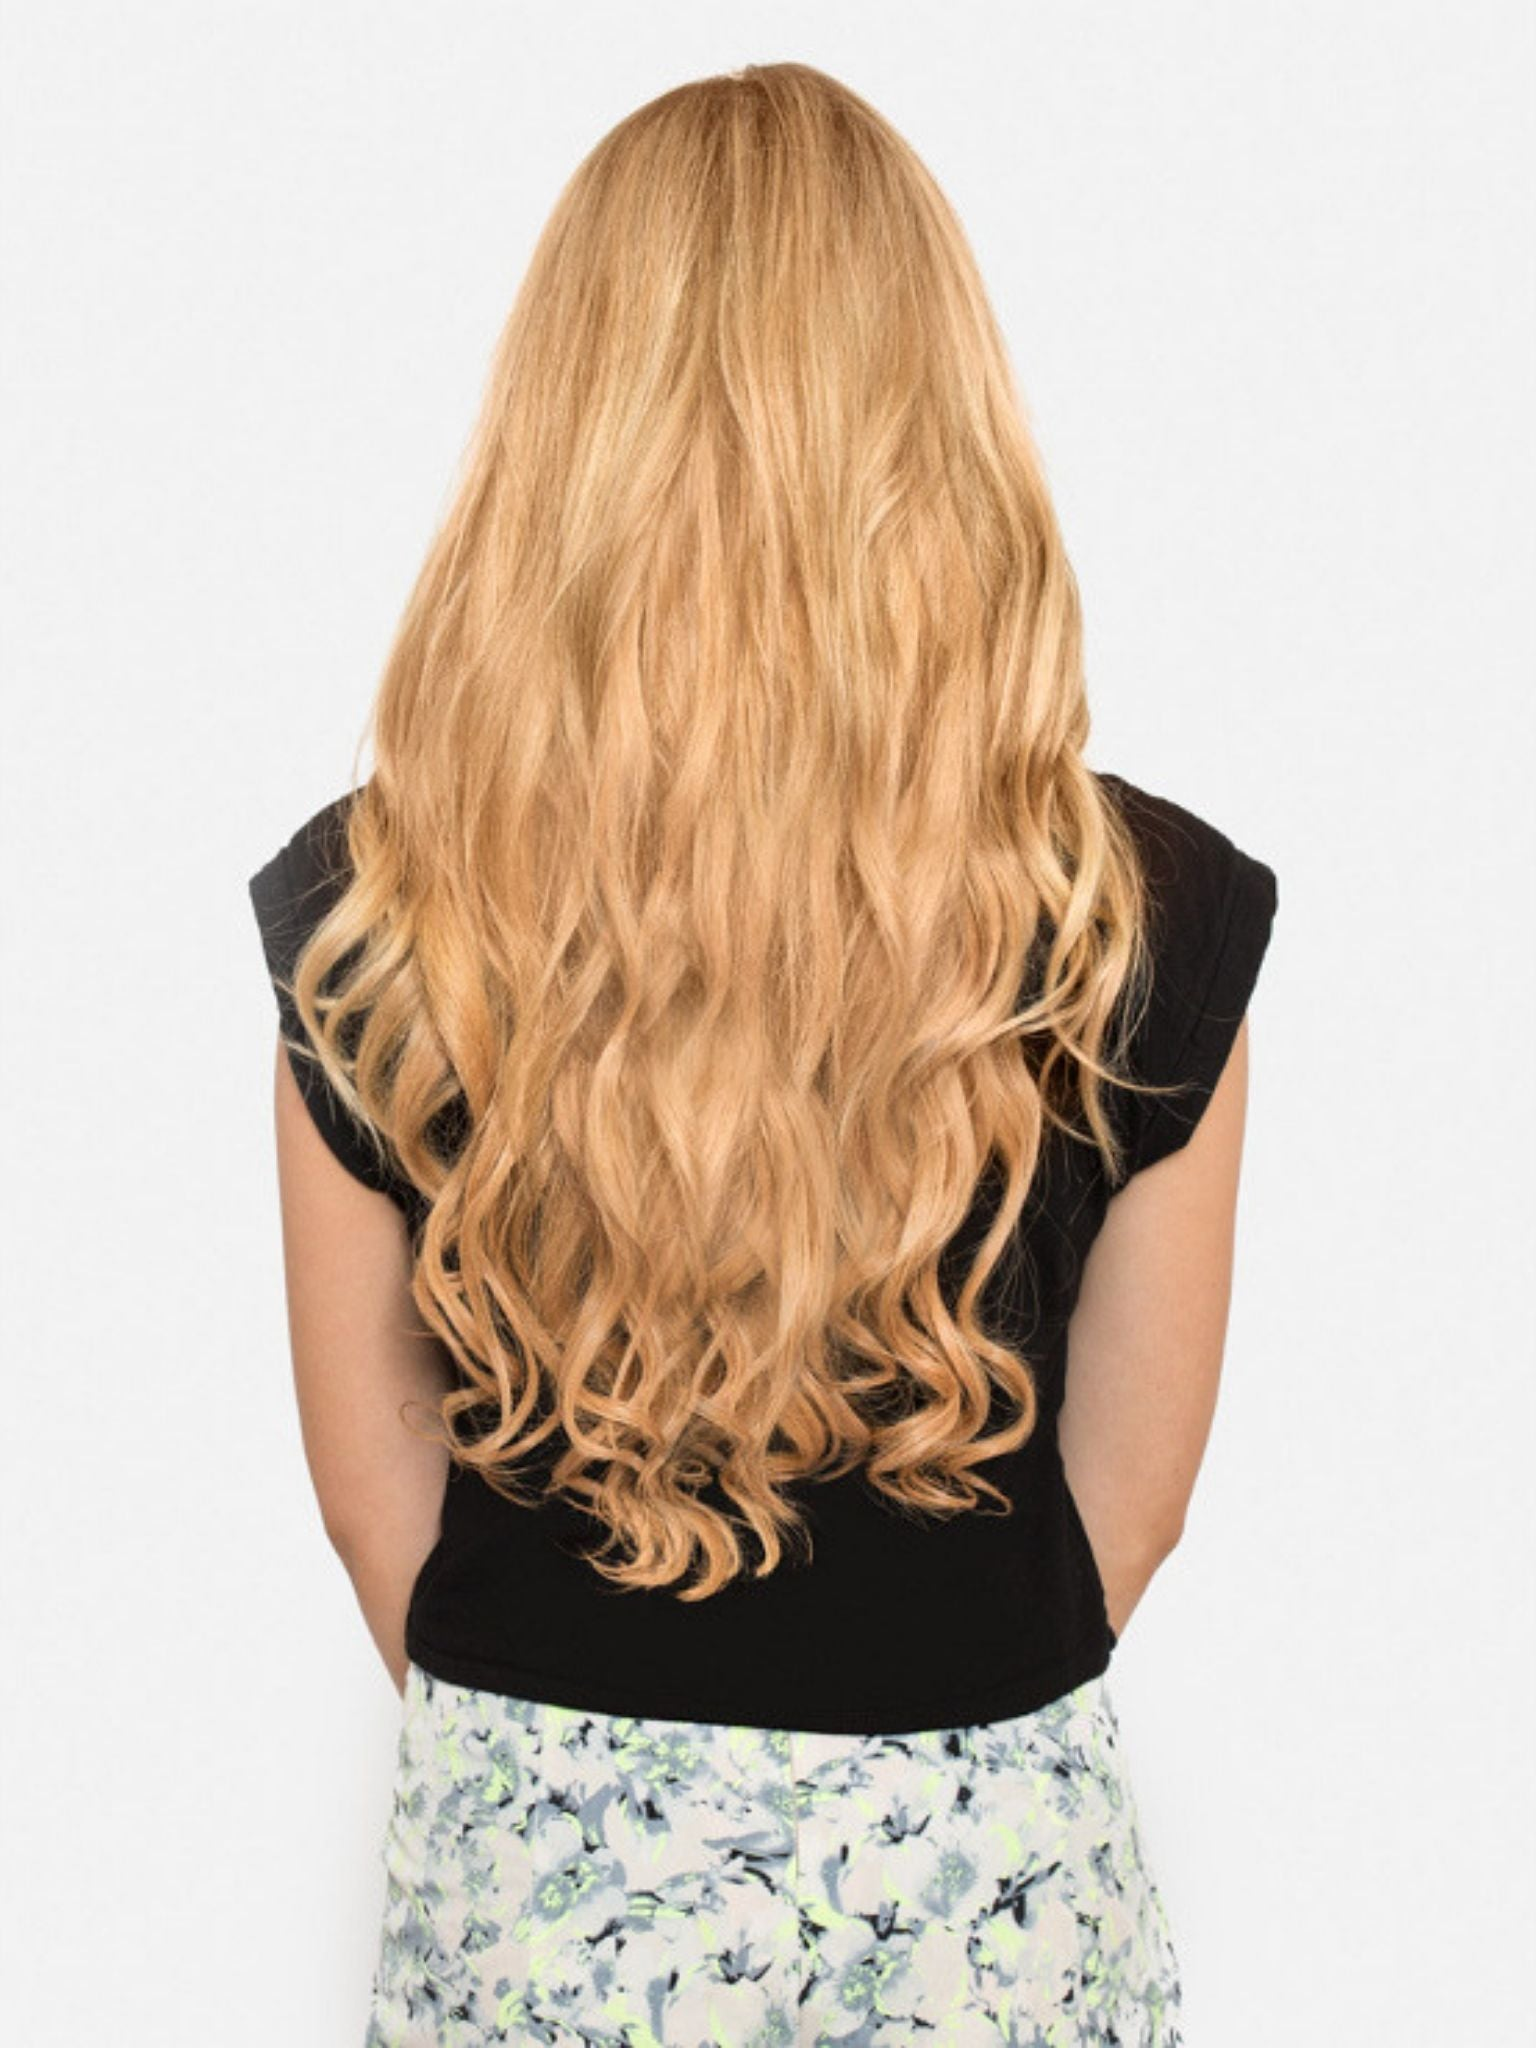 Seamless Tape-In Hair Extensions - Strawberry Blonde #16